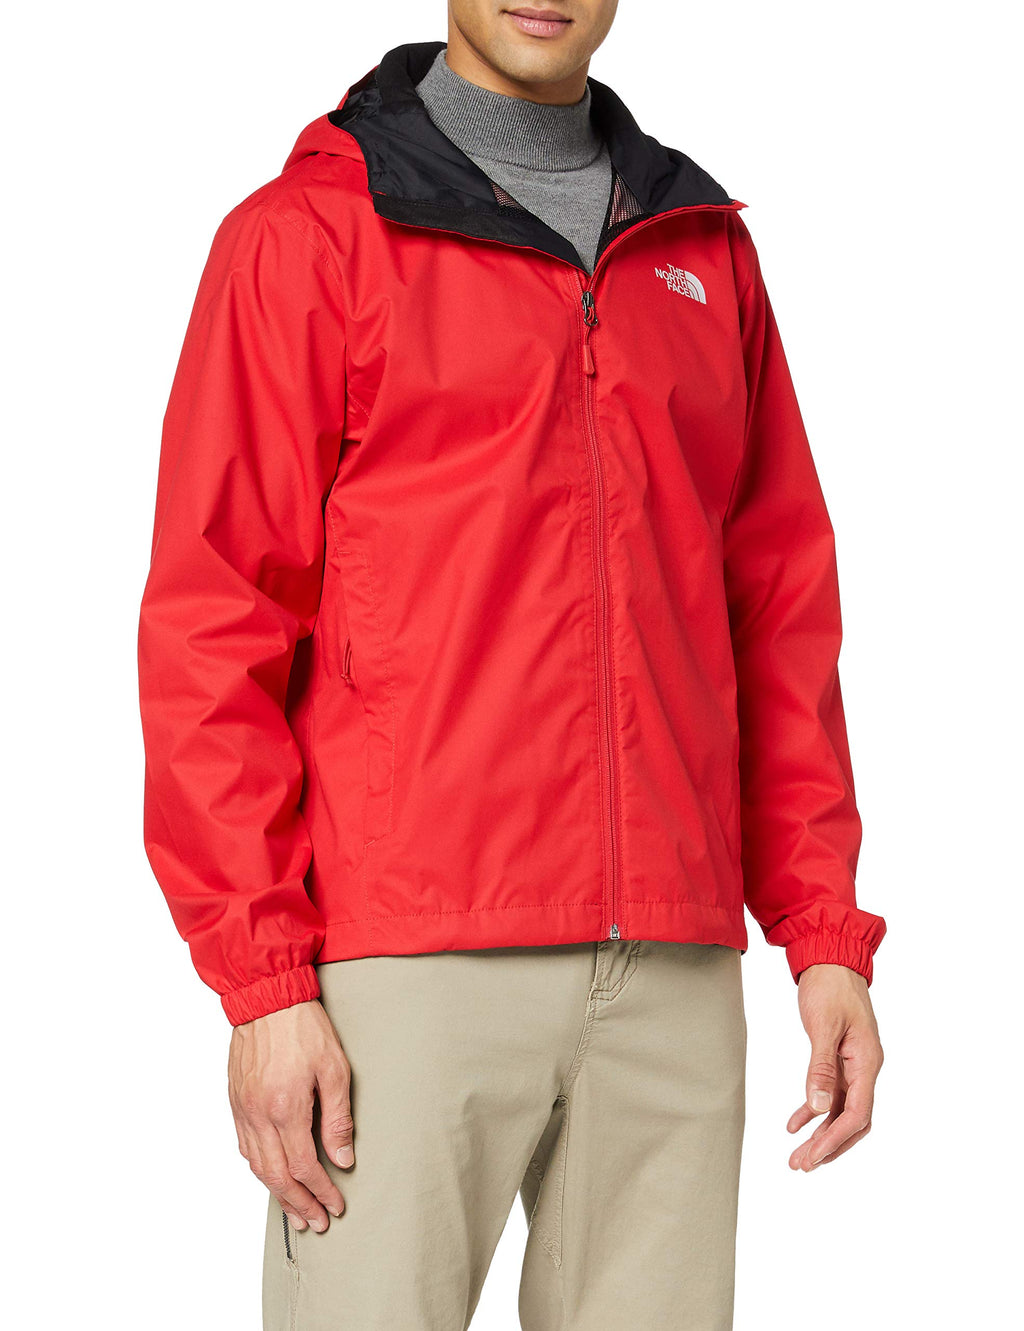 Sport The North Face M Quest Jkt, Giacca Impermeabile Uomo Marche Famose